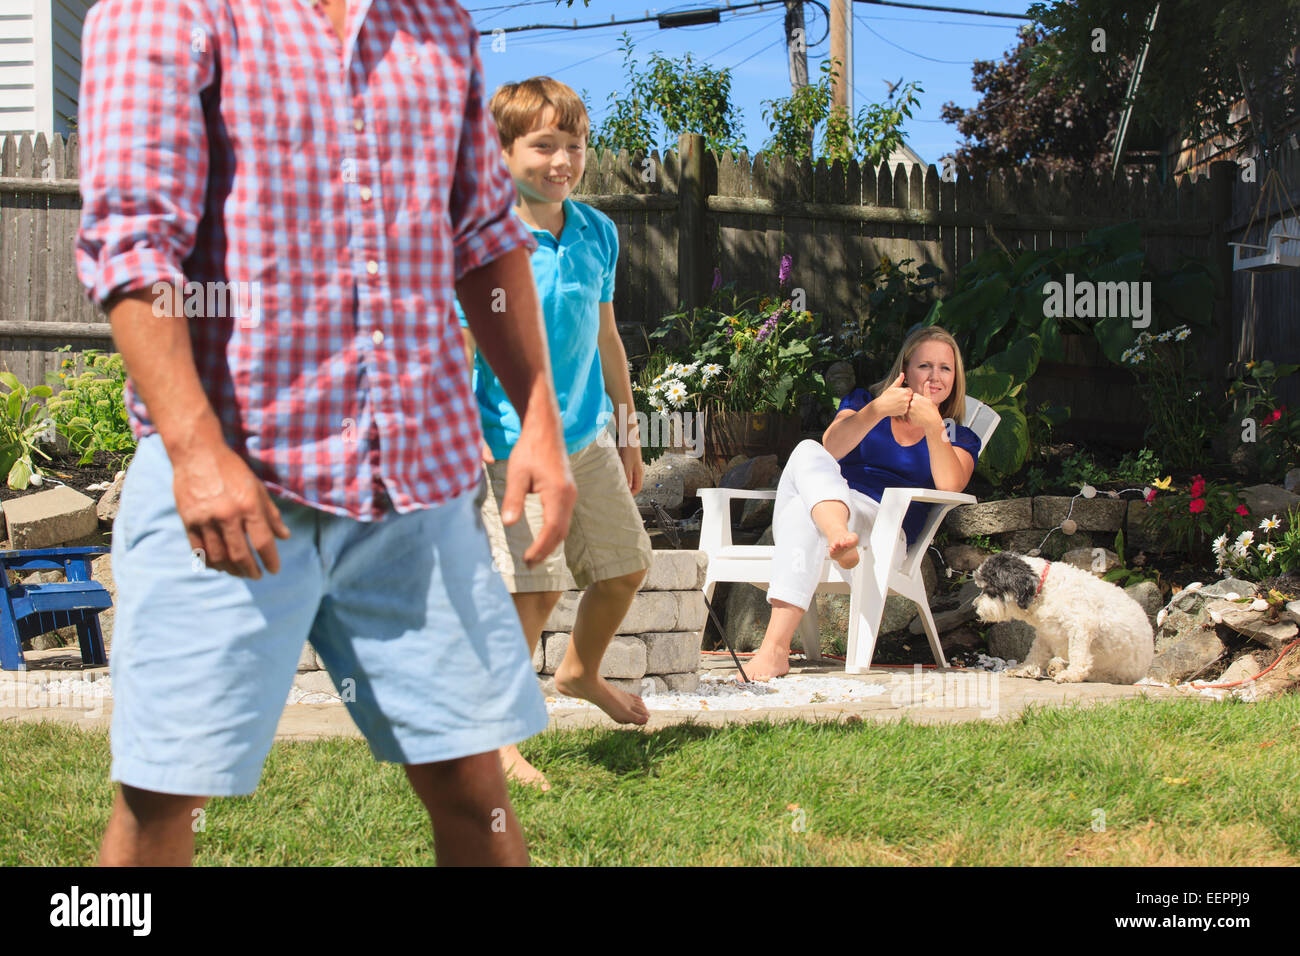 Family with hearing impairments playing football and signing in American sign language in backyard - Stock Image